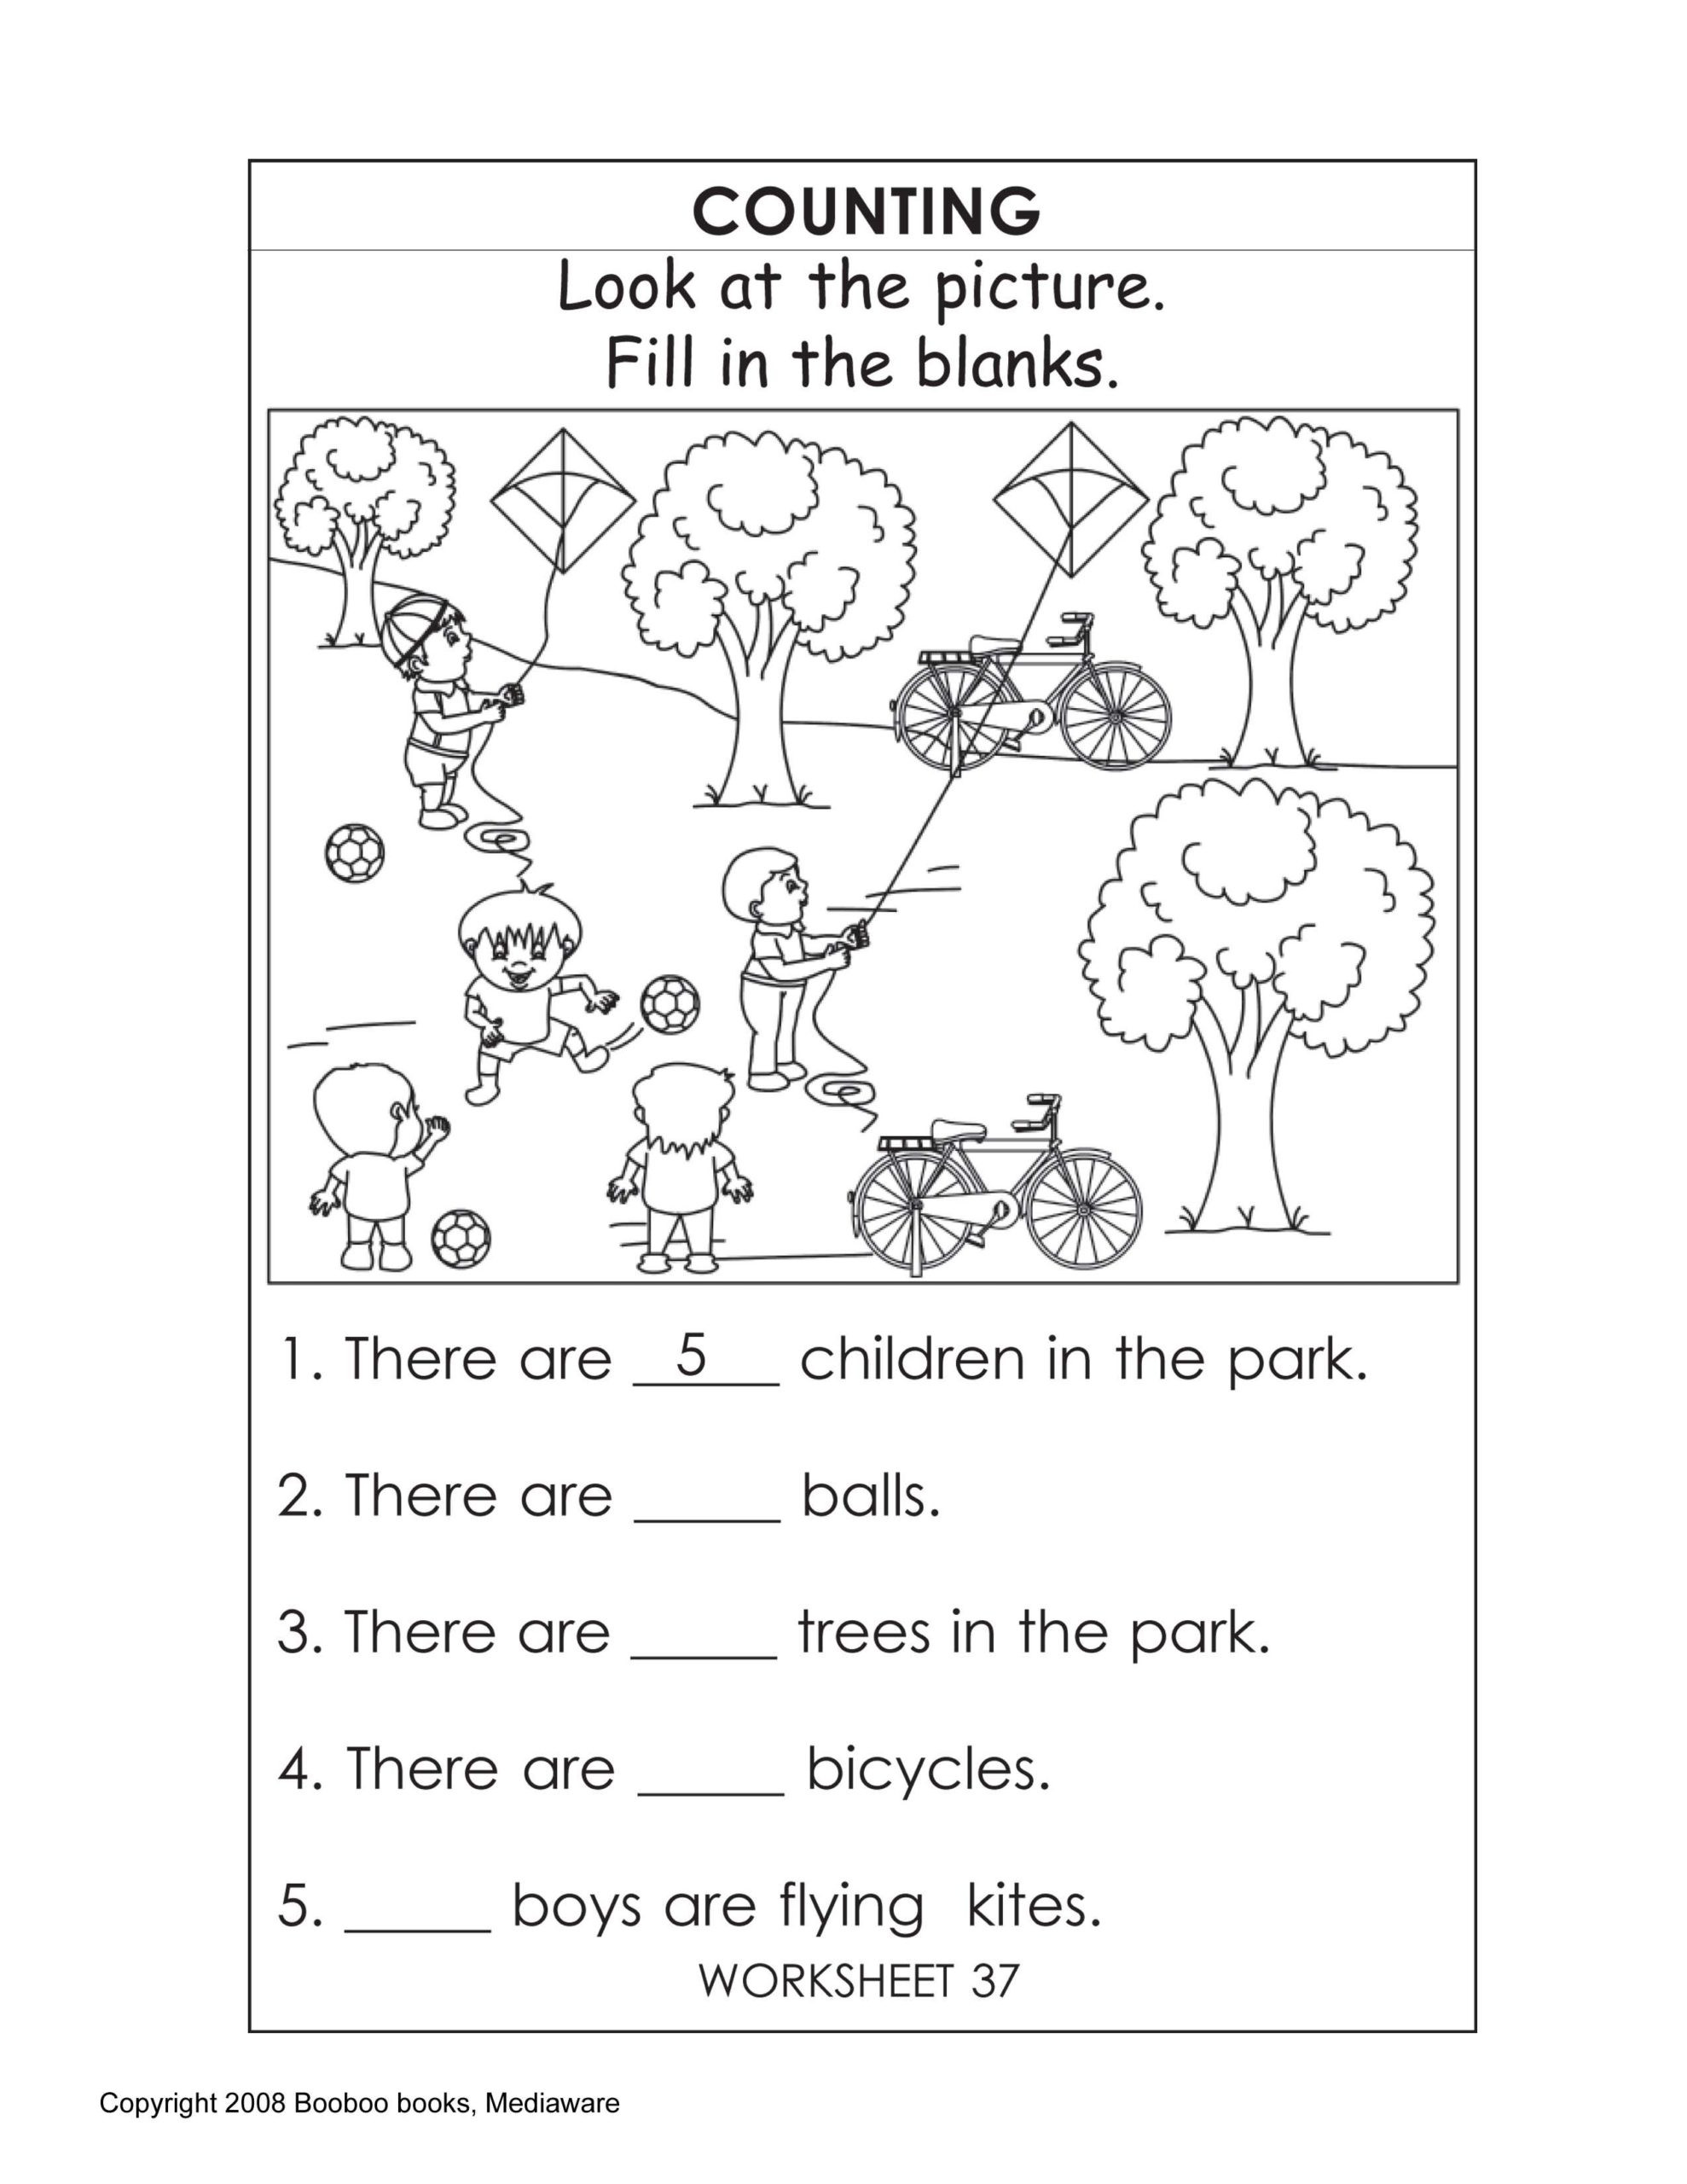 Science 7th Grade Worksheets Worksheet Printable Pre Writing Worksheets Easy Games for